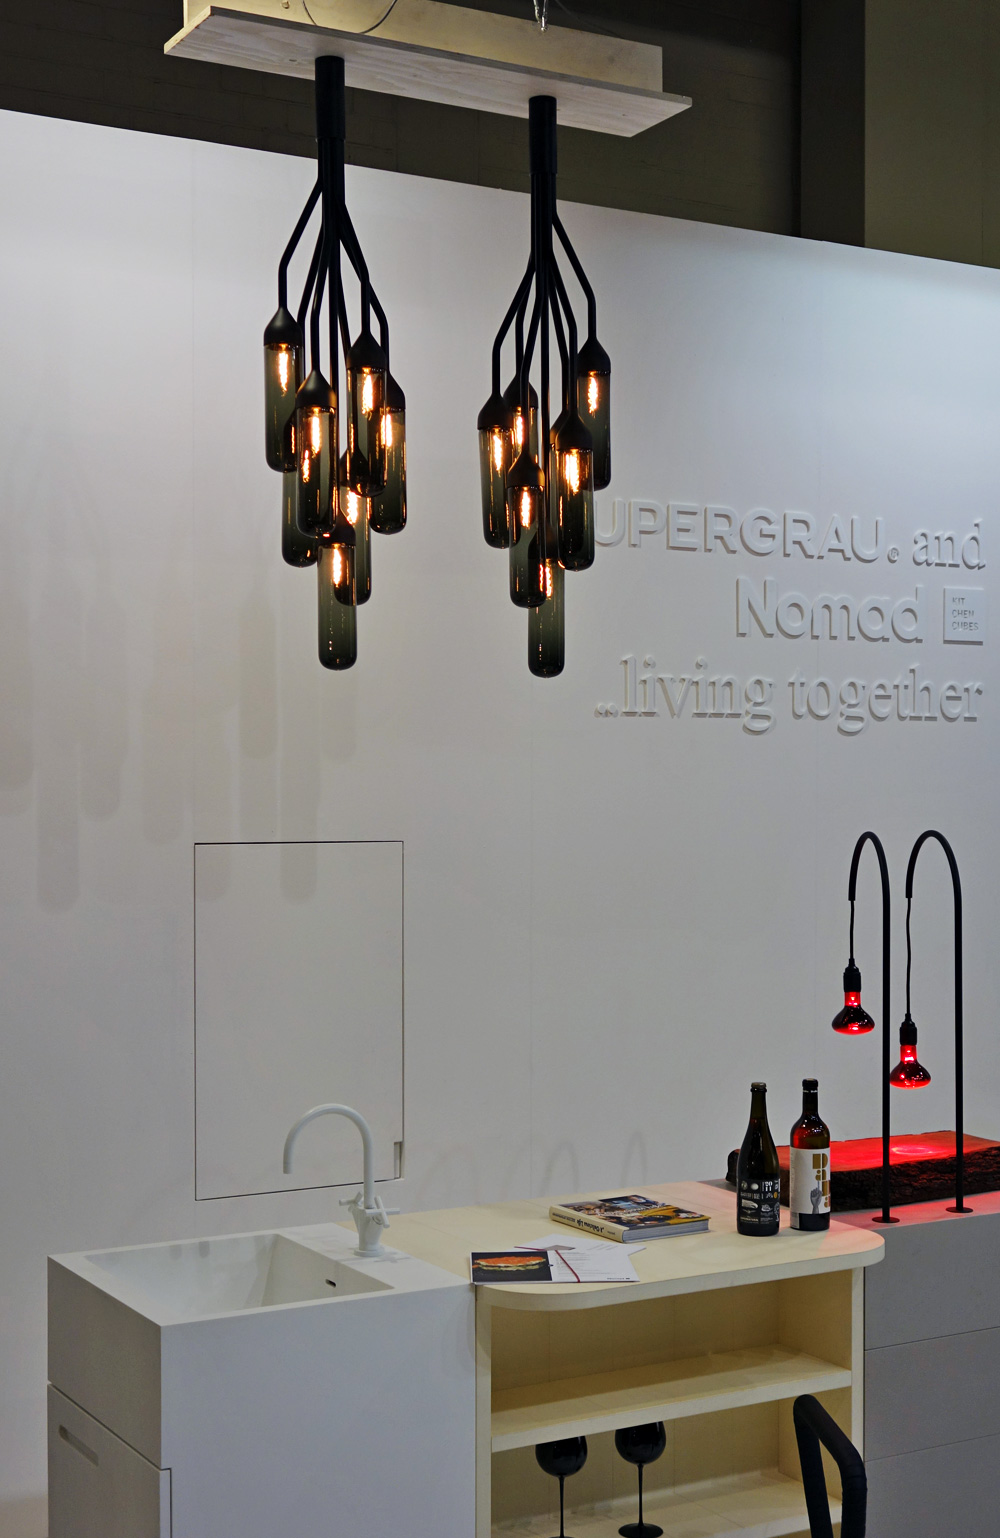 IMM-2014-Internationale-Moebelmesse-Koeln-Supergrau-Nomad